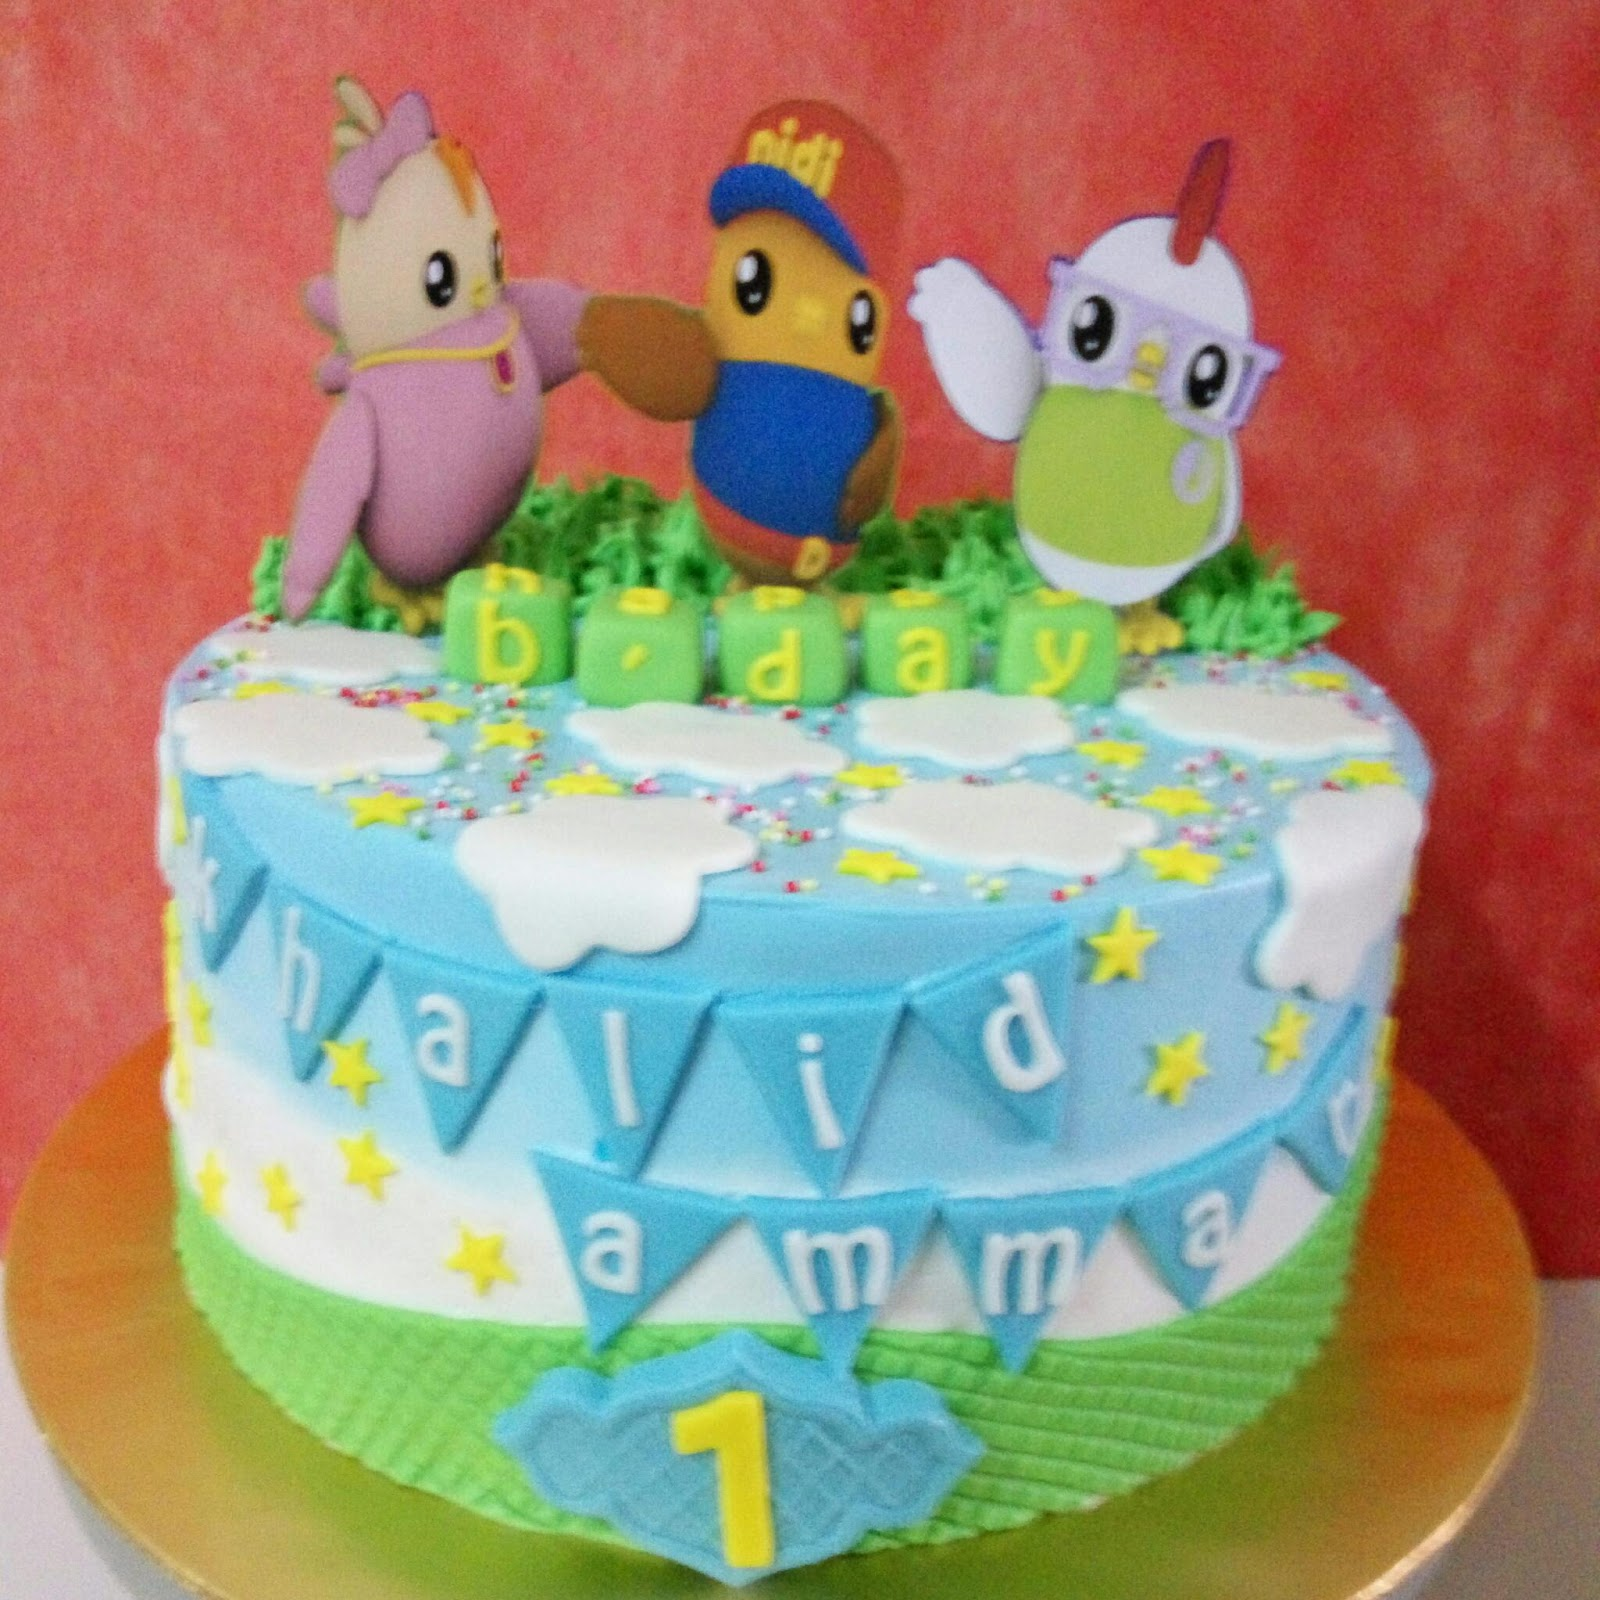 Images Of Birthday Cake For Didi : szcutesweet: Birthday cake didi and friends